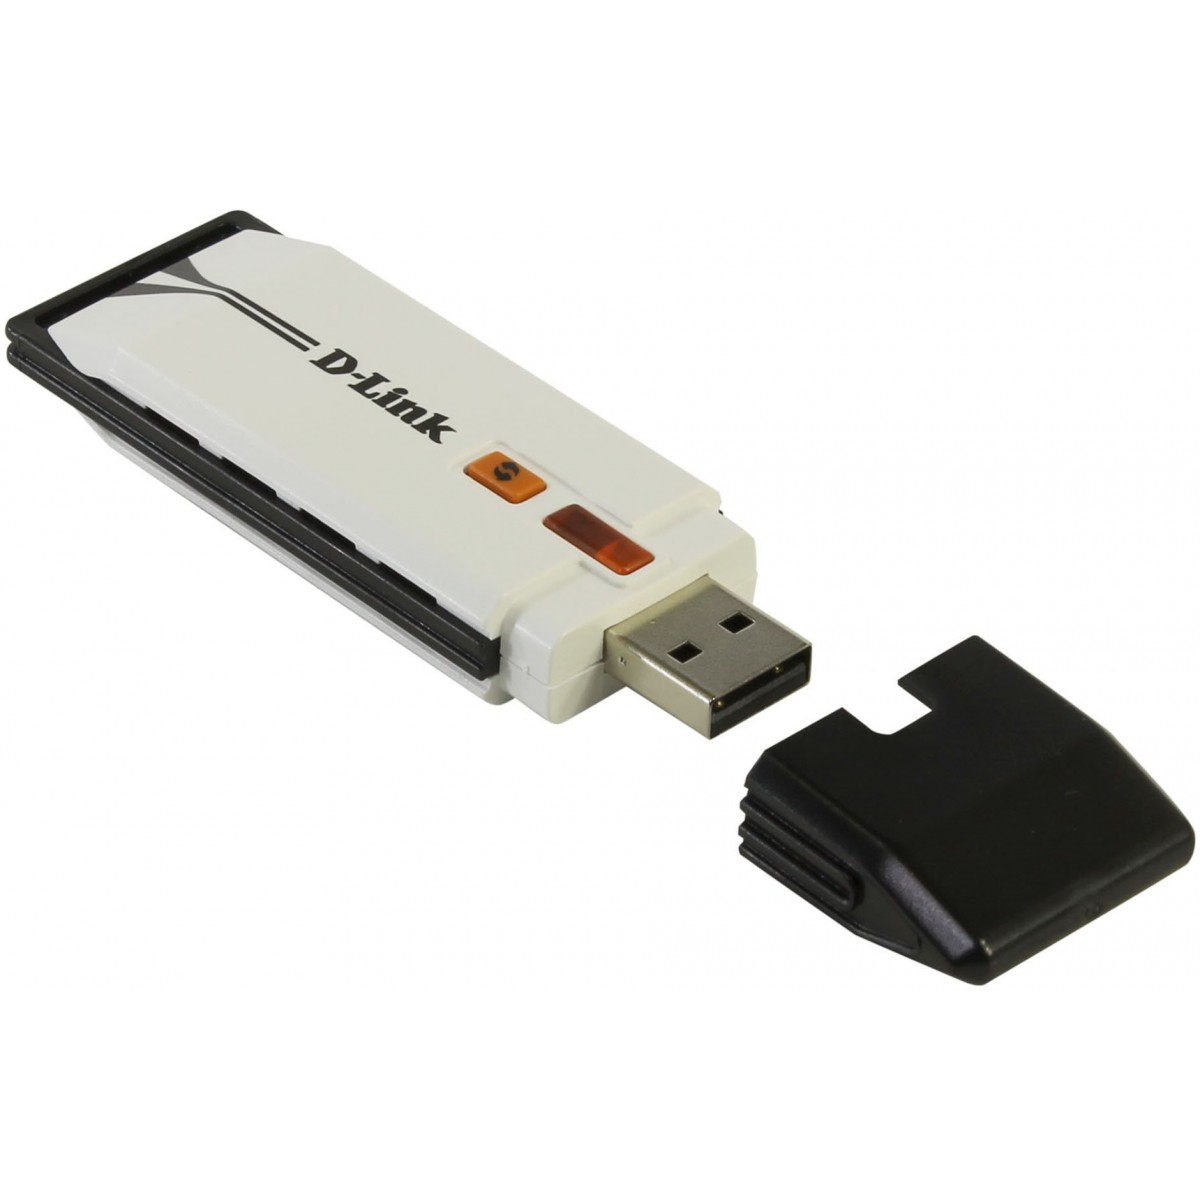 D-LINK DWA-160 Xtreme Dual Band USB Wireless Adapter